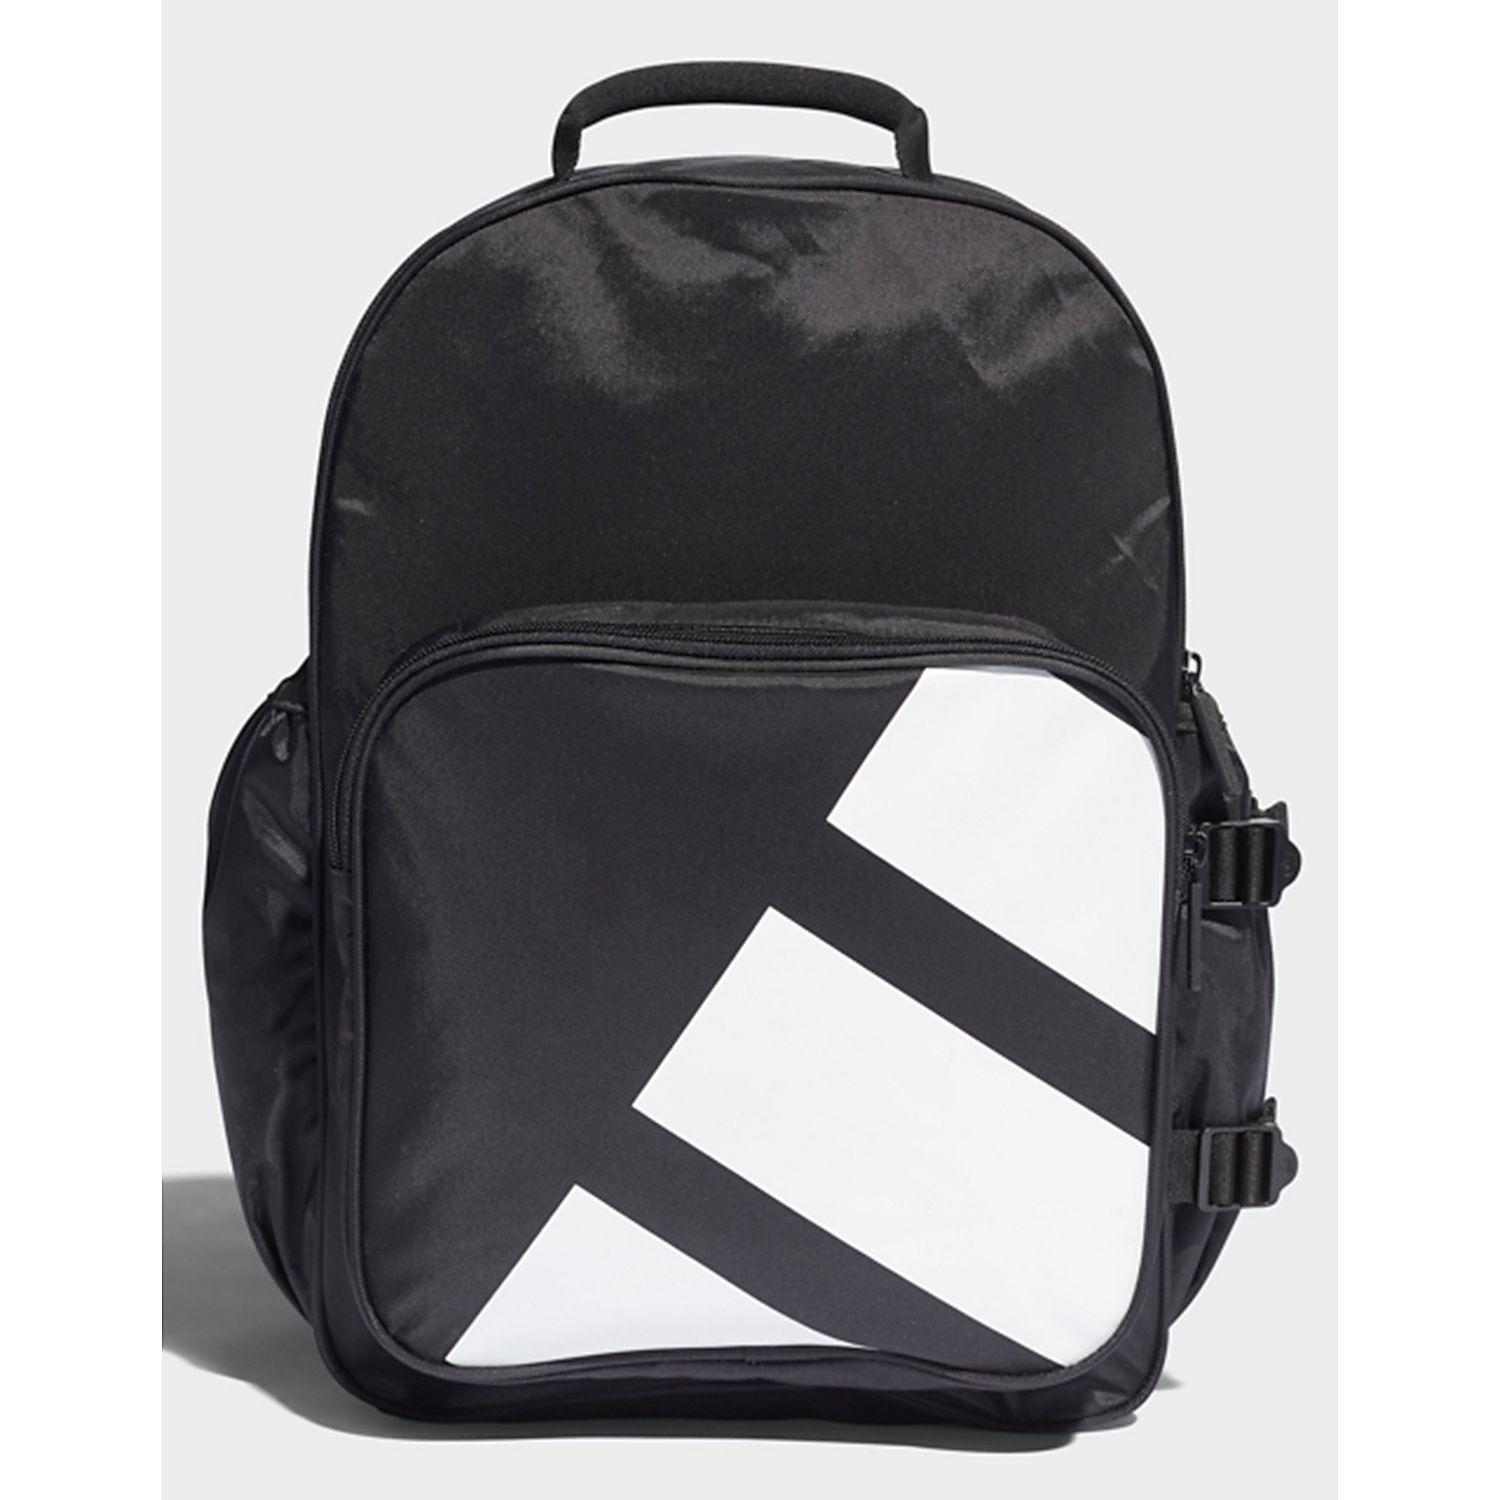 16469ba787 adidas Eqt Classic Backpack in Black for Men - Lyst